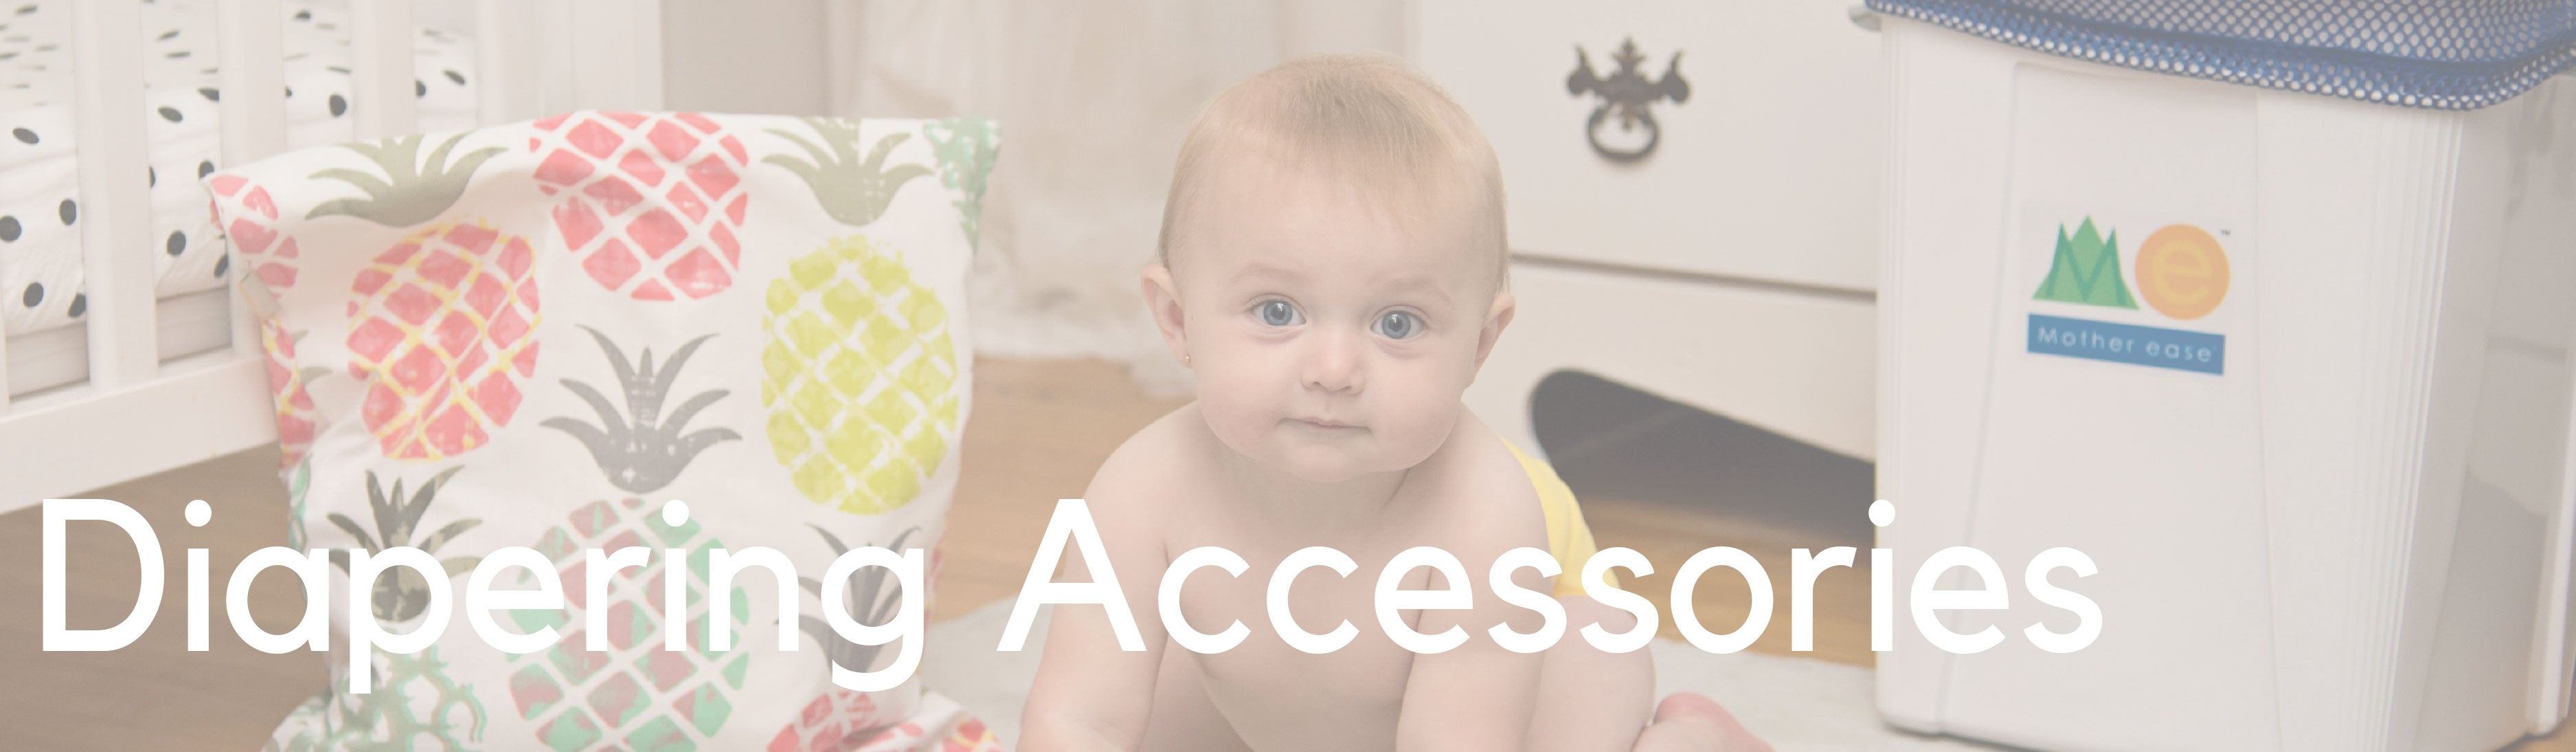 Mother-ease-diapering-accessories-banner